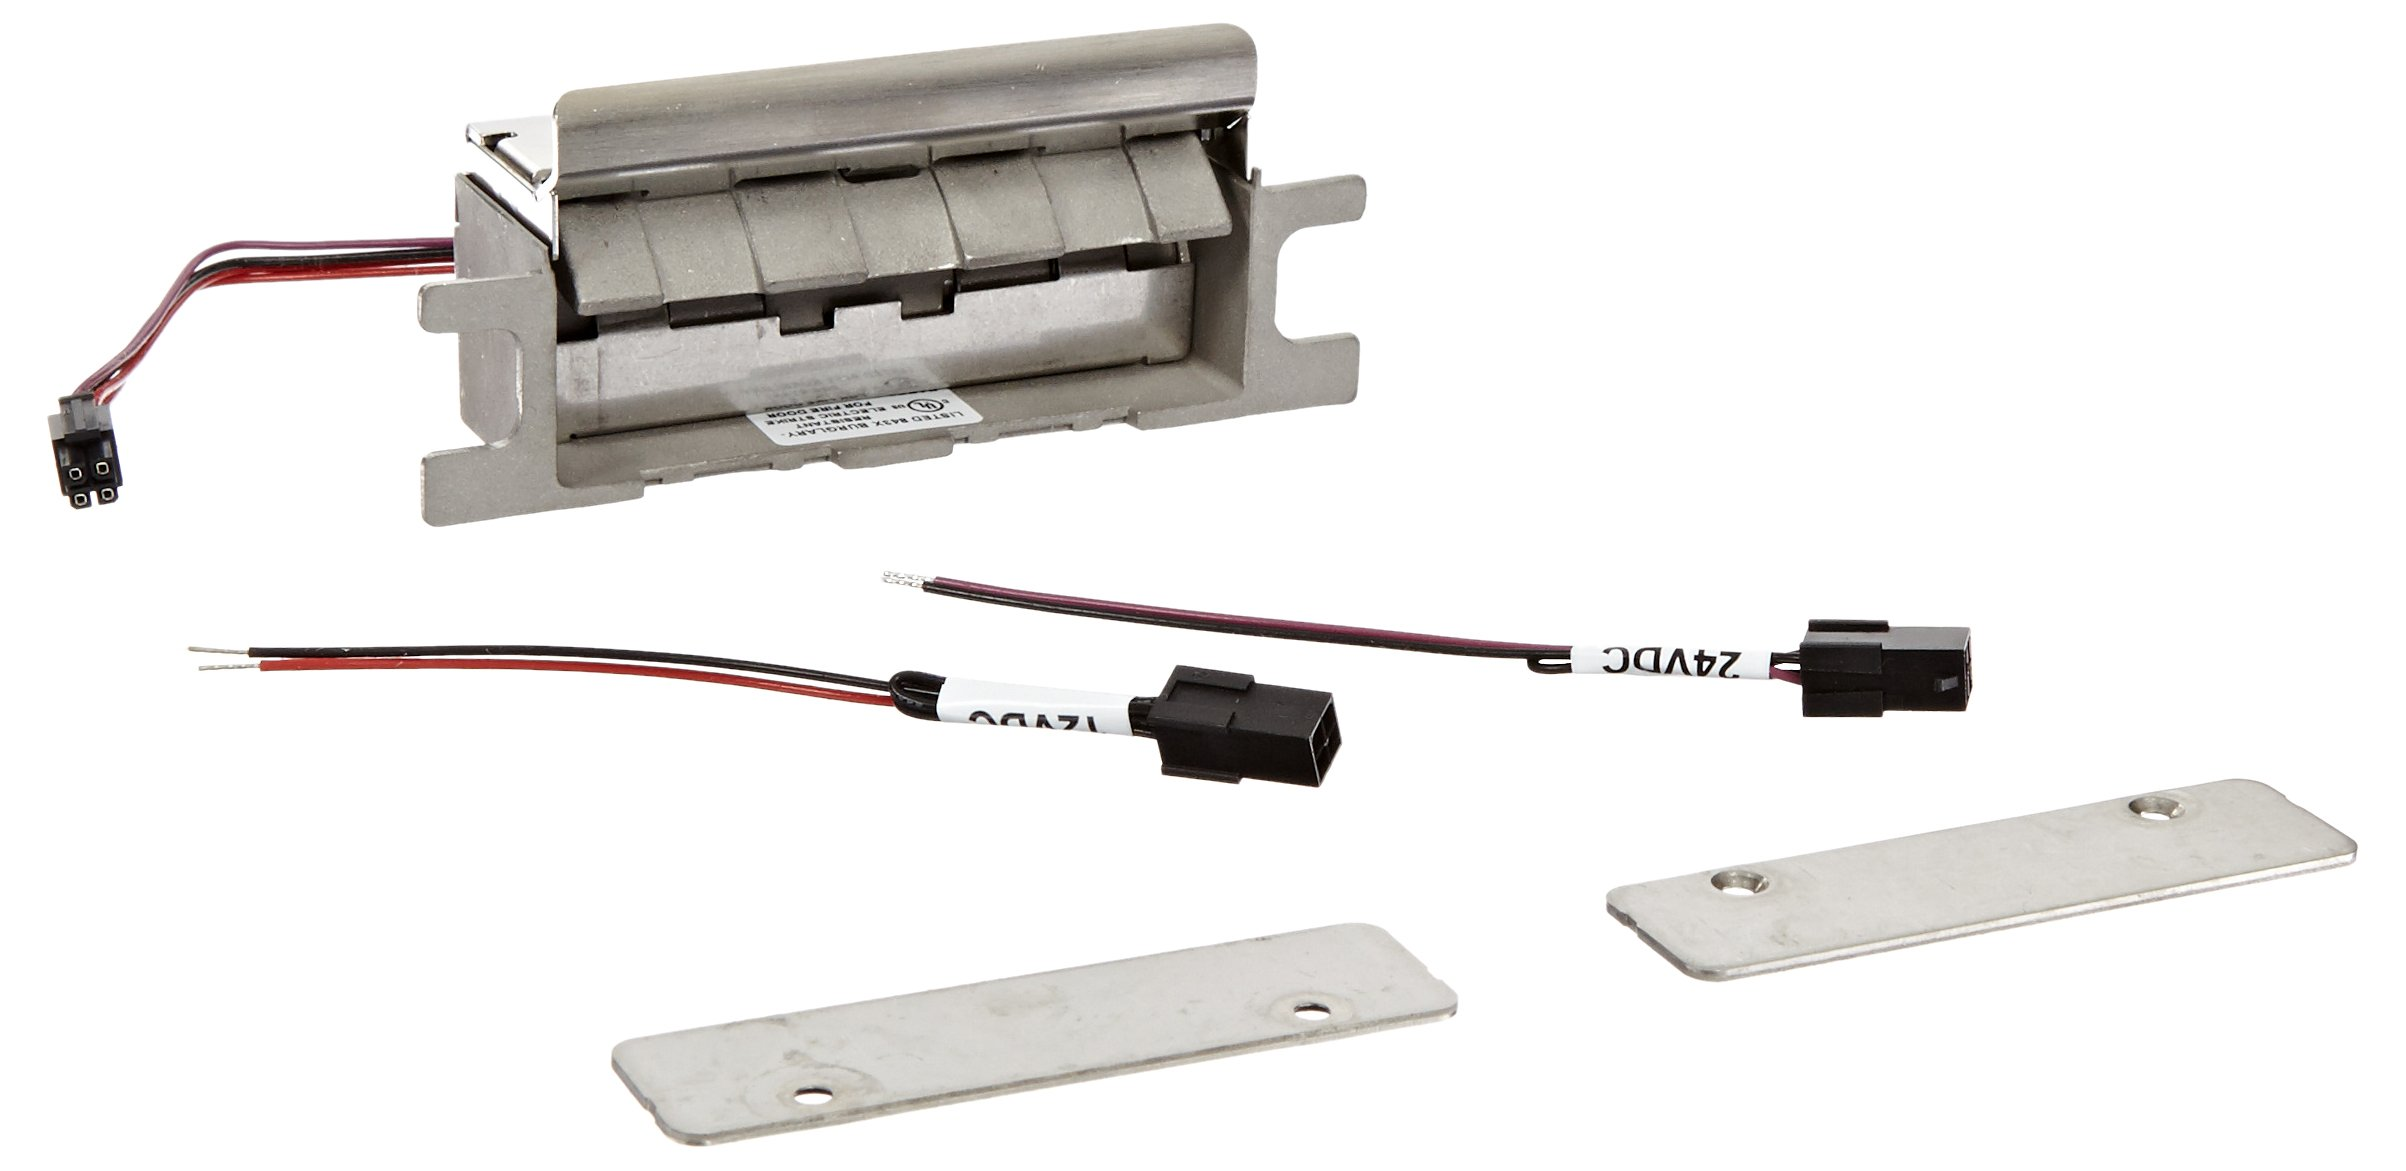 HES 8500 Series Stainless Steel Concealed Electric Strike Body for Mortise Locksets, Satin Stainless Steel Finish